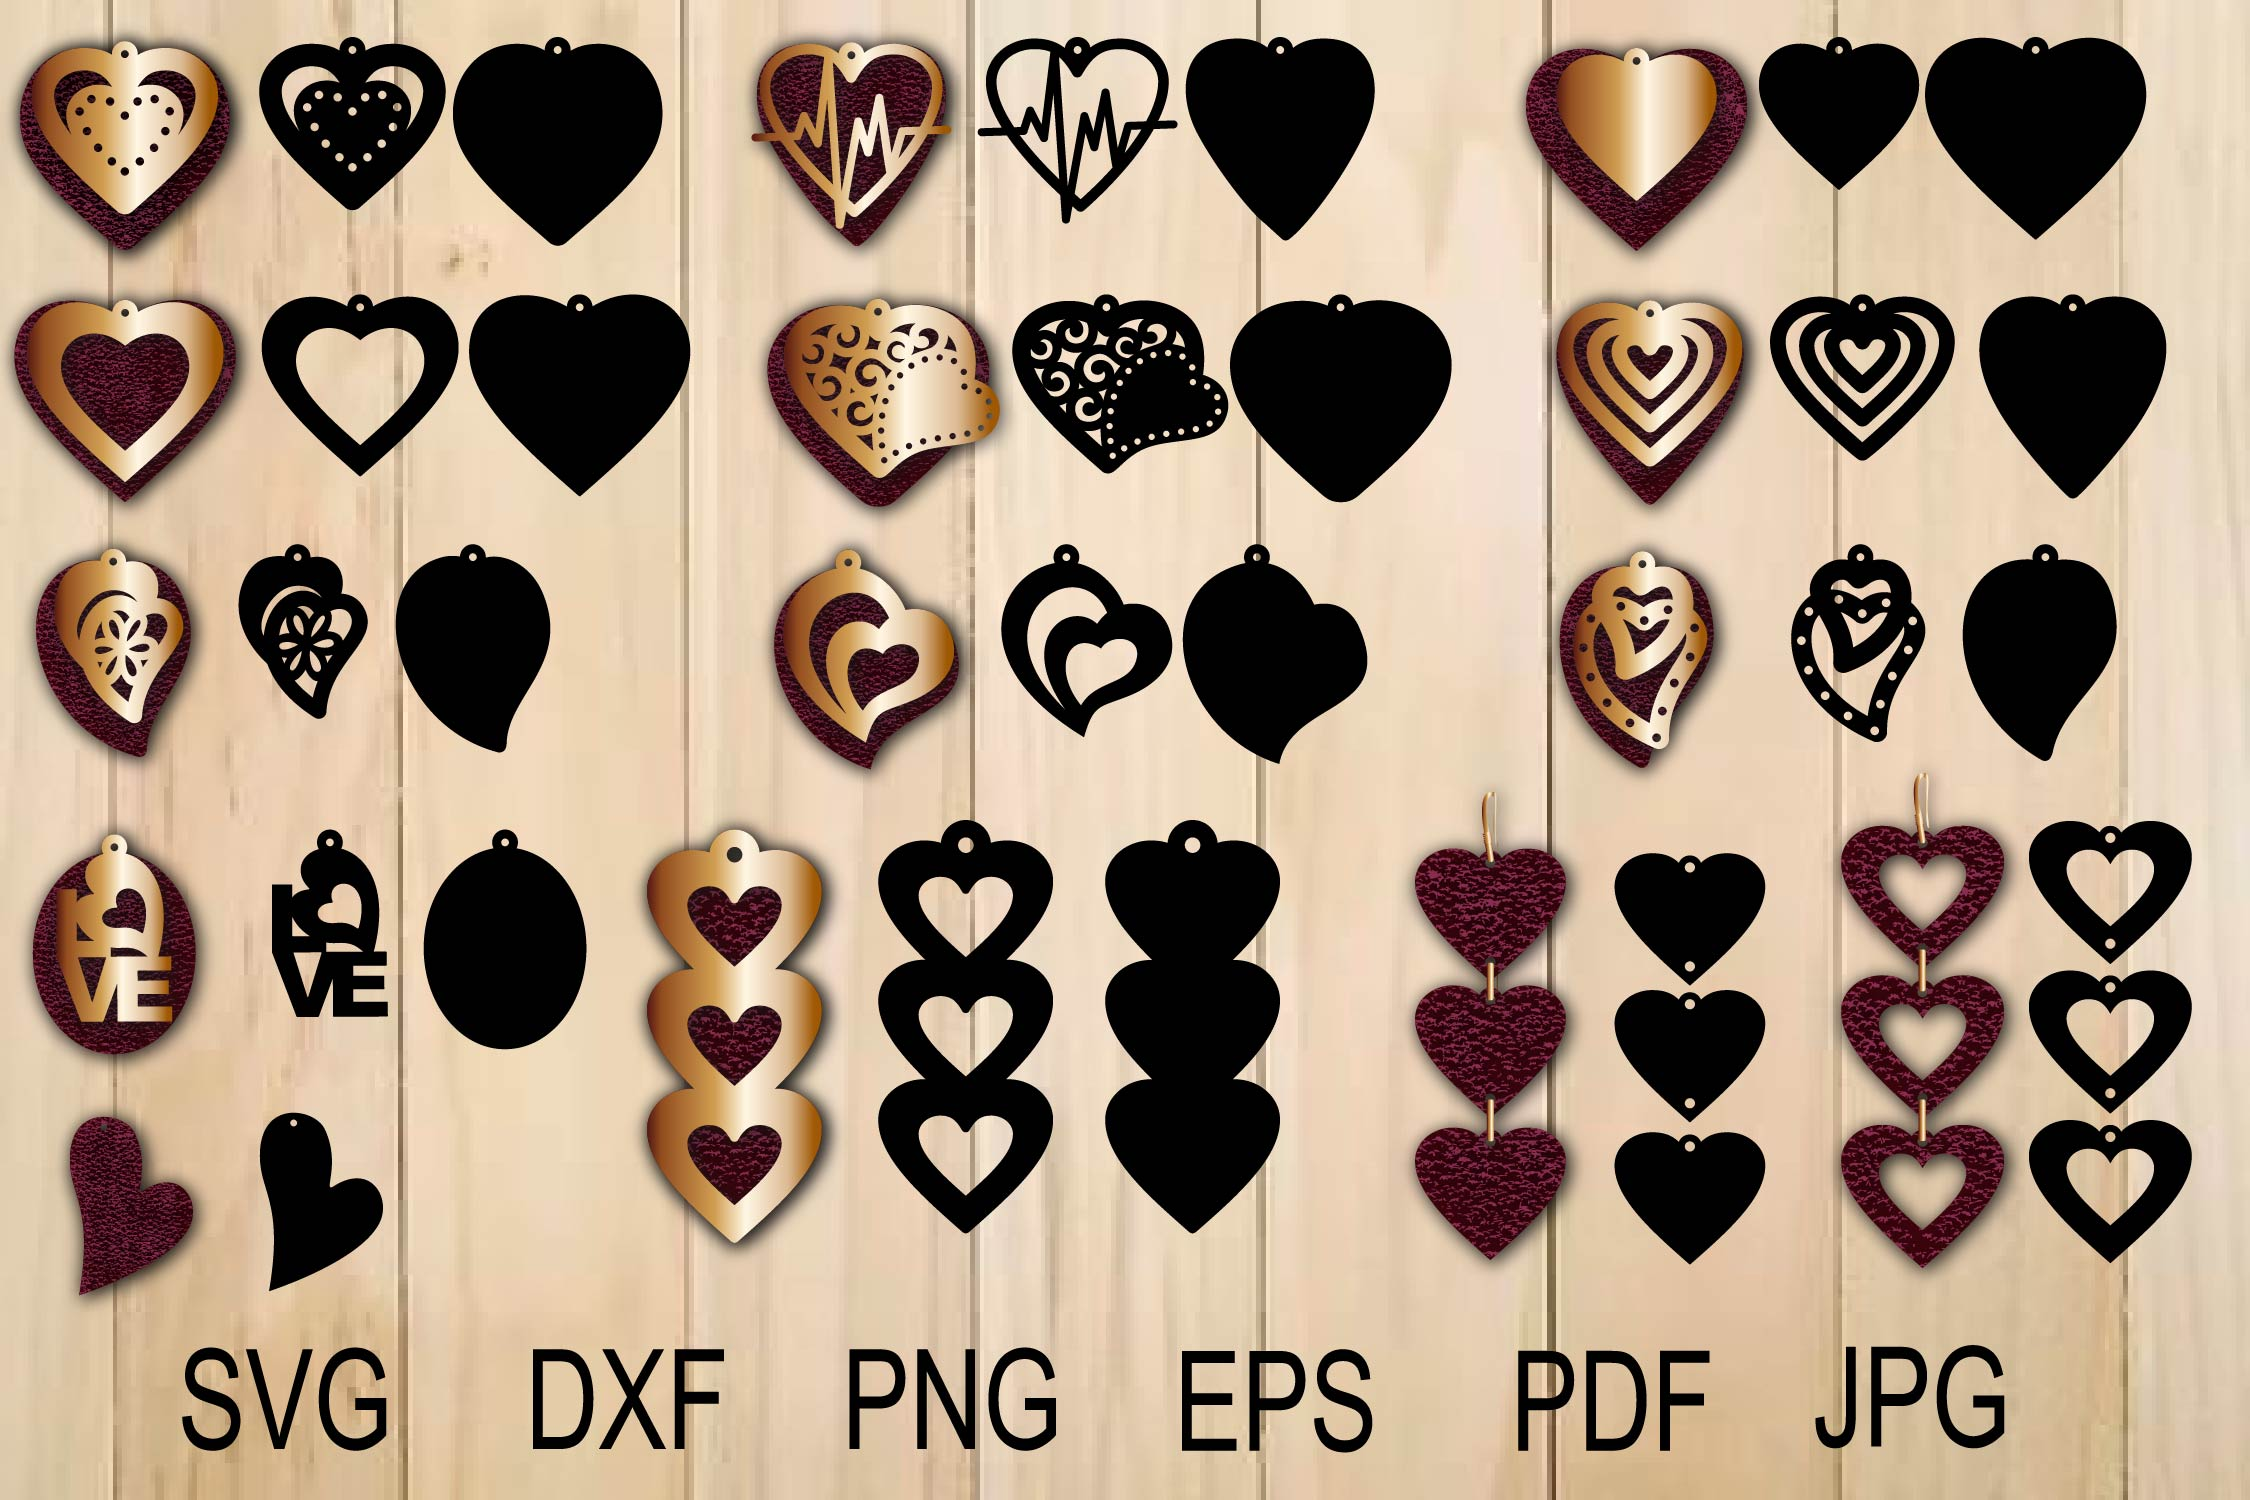 Download Free Heart Earring Template Graphic By Yulnniya Creative Fabrica for Cricut Explore, Silhouette and other cutting machines.